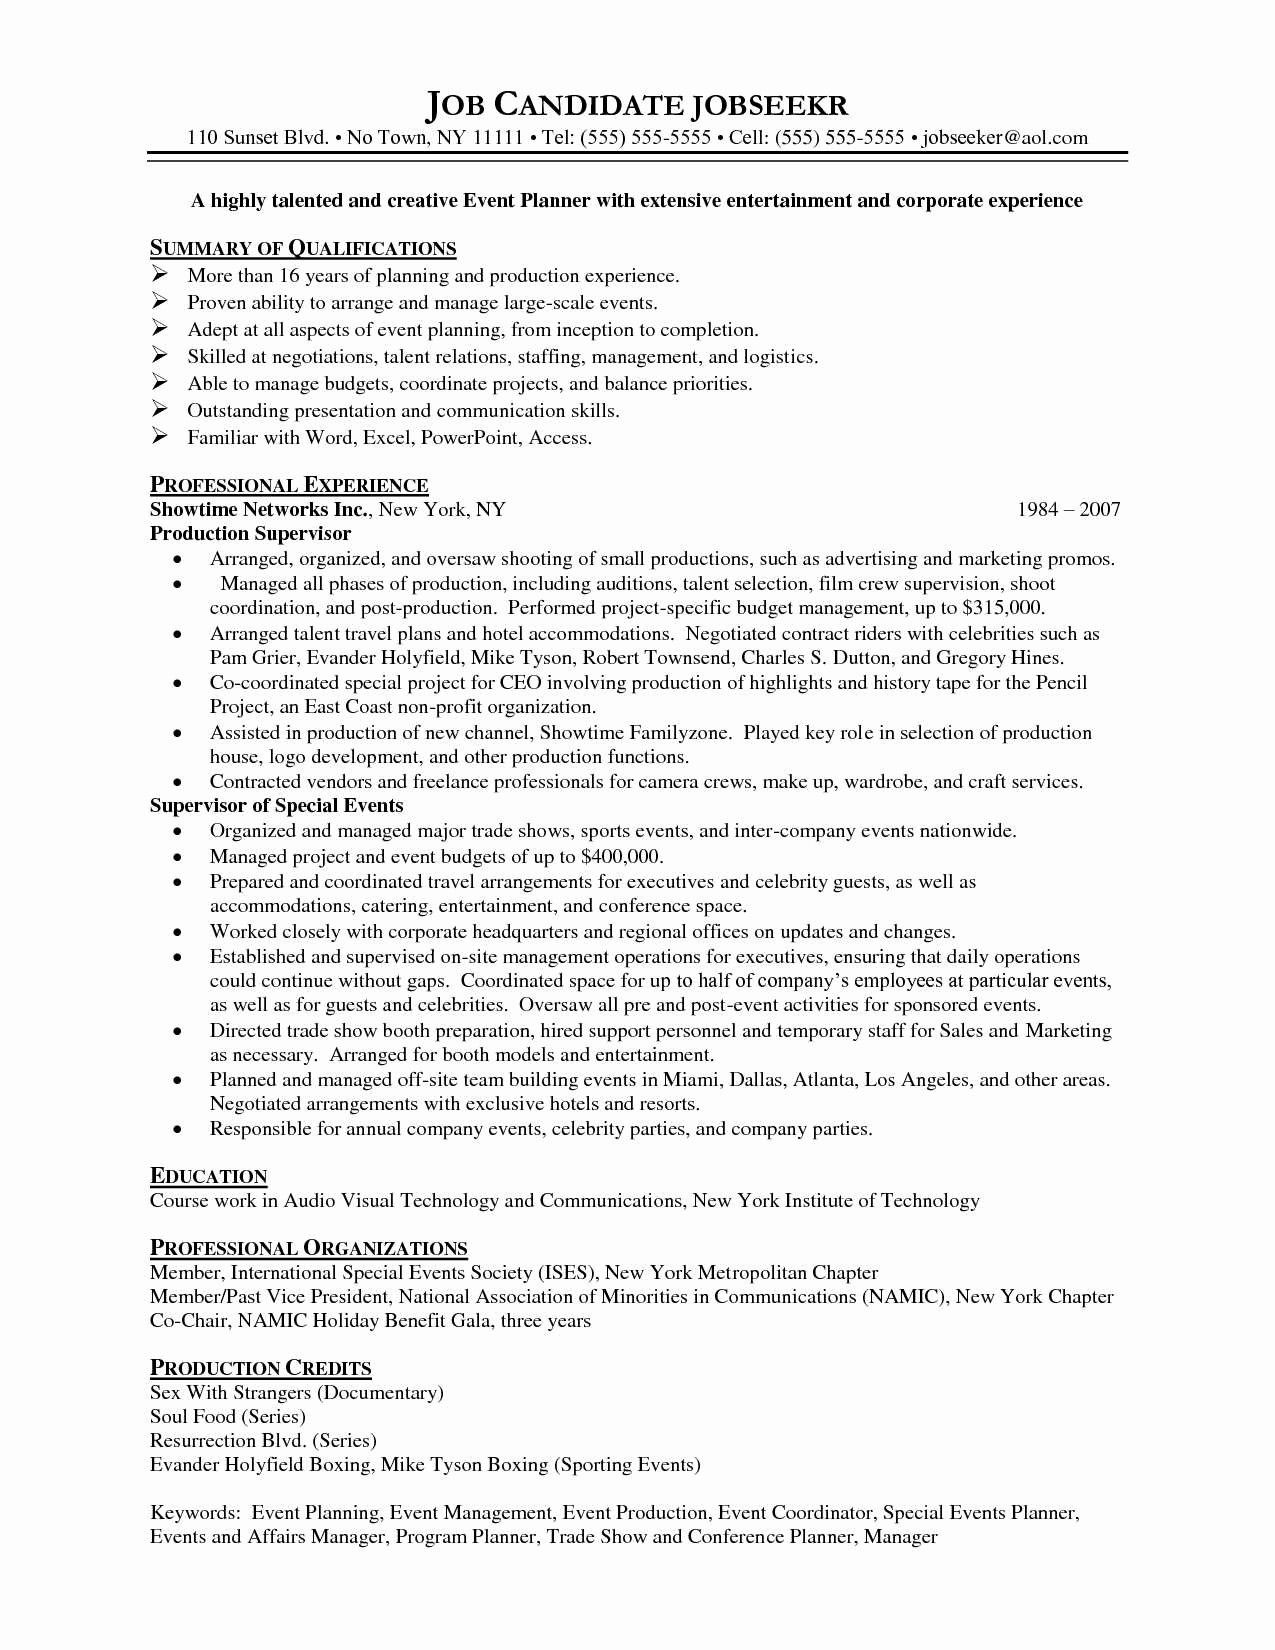 resume examples event coordinator templates planner planning business jobs management for Resume Event Management Resume For Freshers